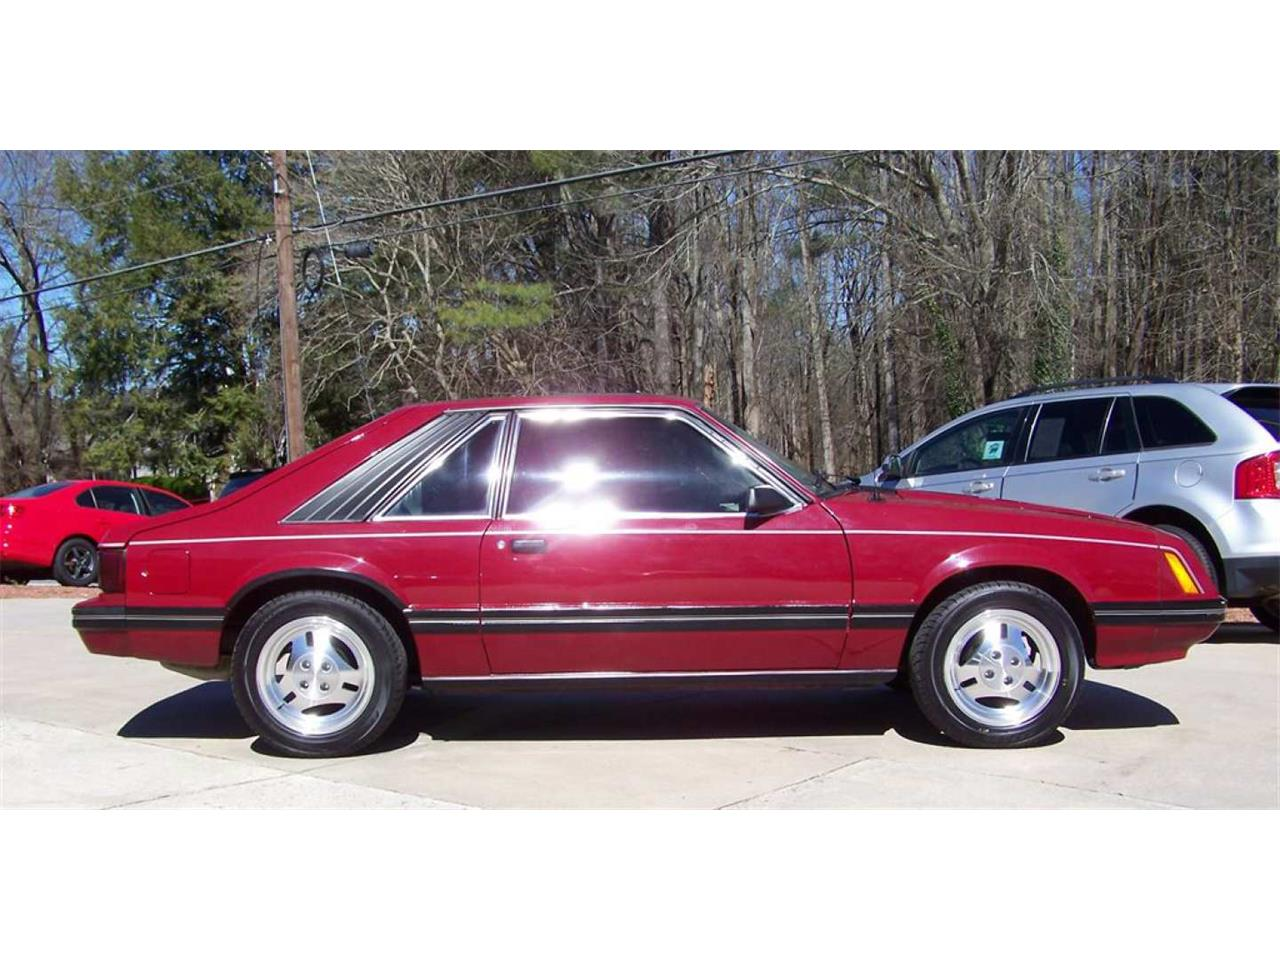 Large Picture of 1981 Mustang located in Louisiana Auction Vehicle Offered by Vicari Auction - Q5RH